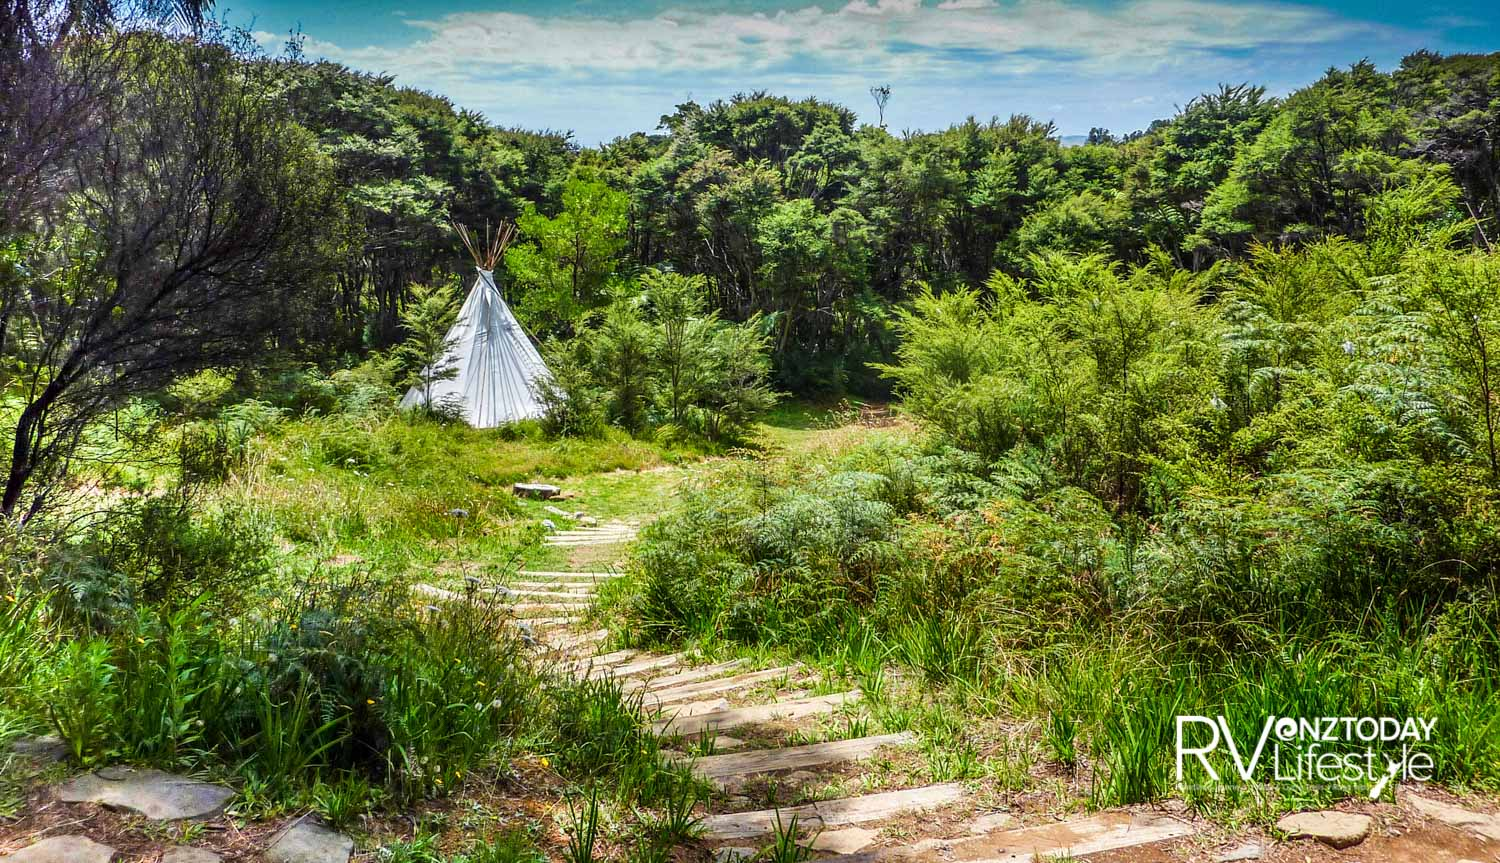 A Tipi nestled in the forest at Solscape